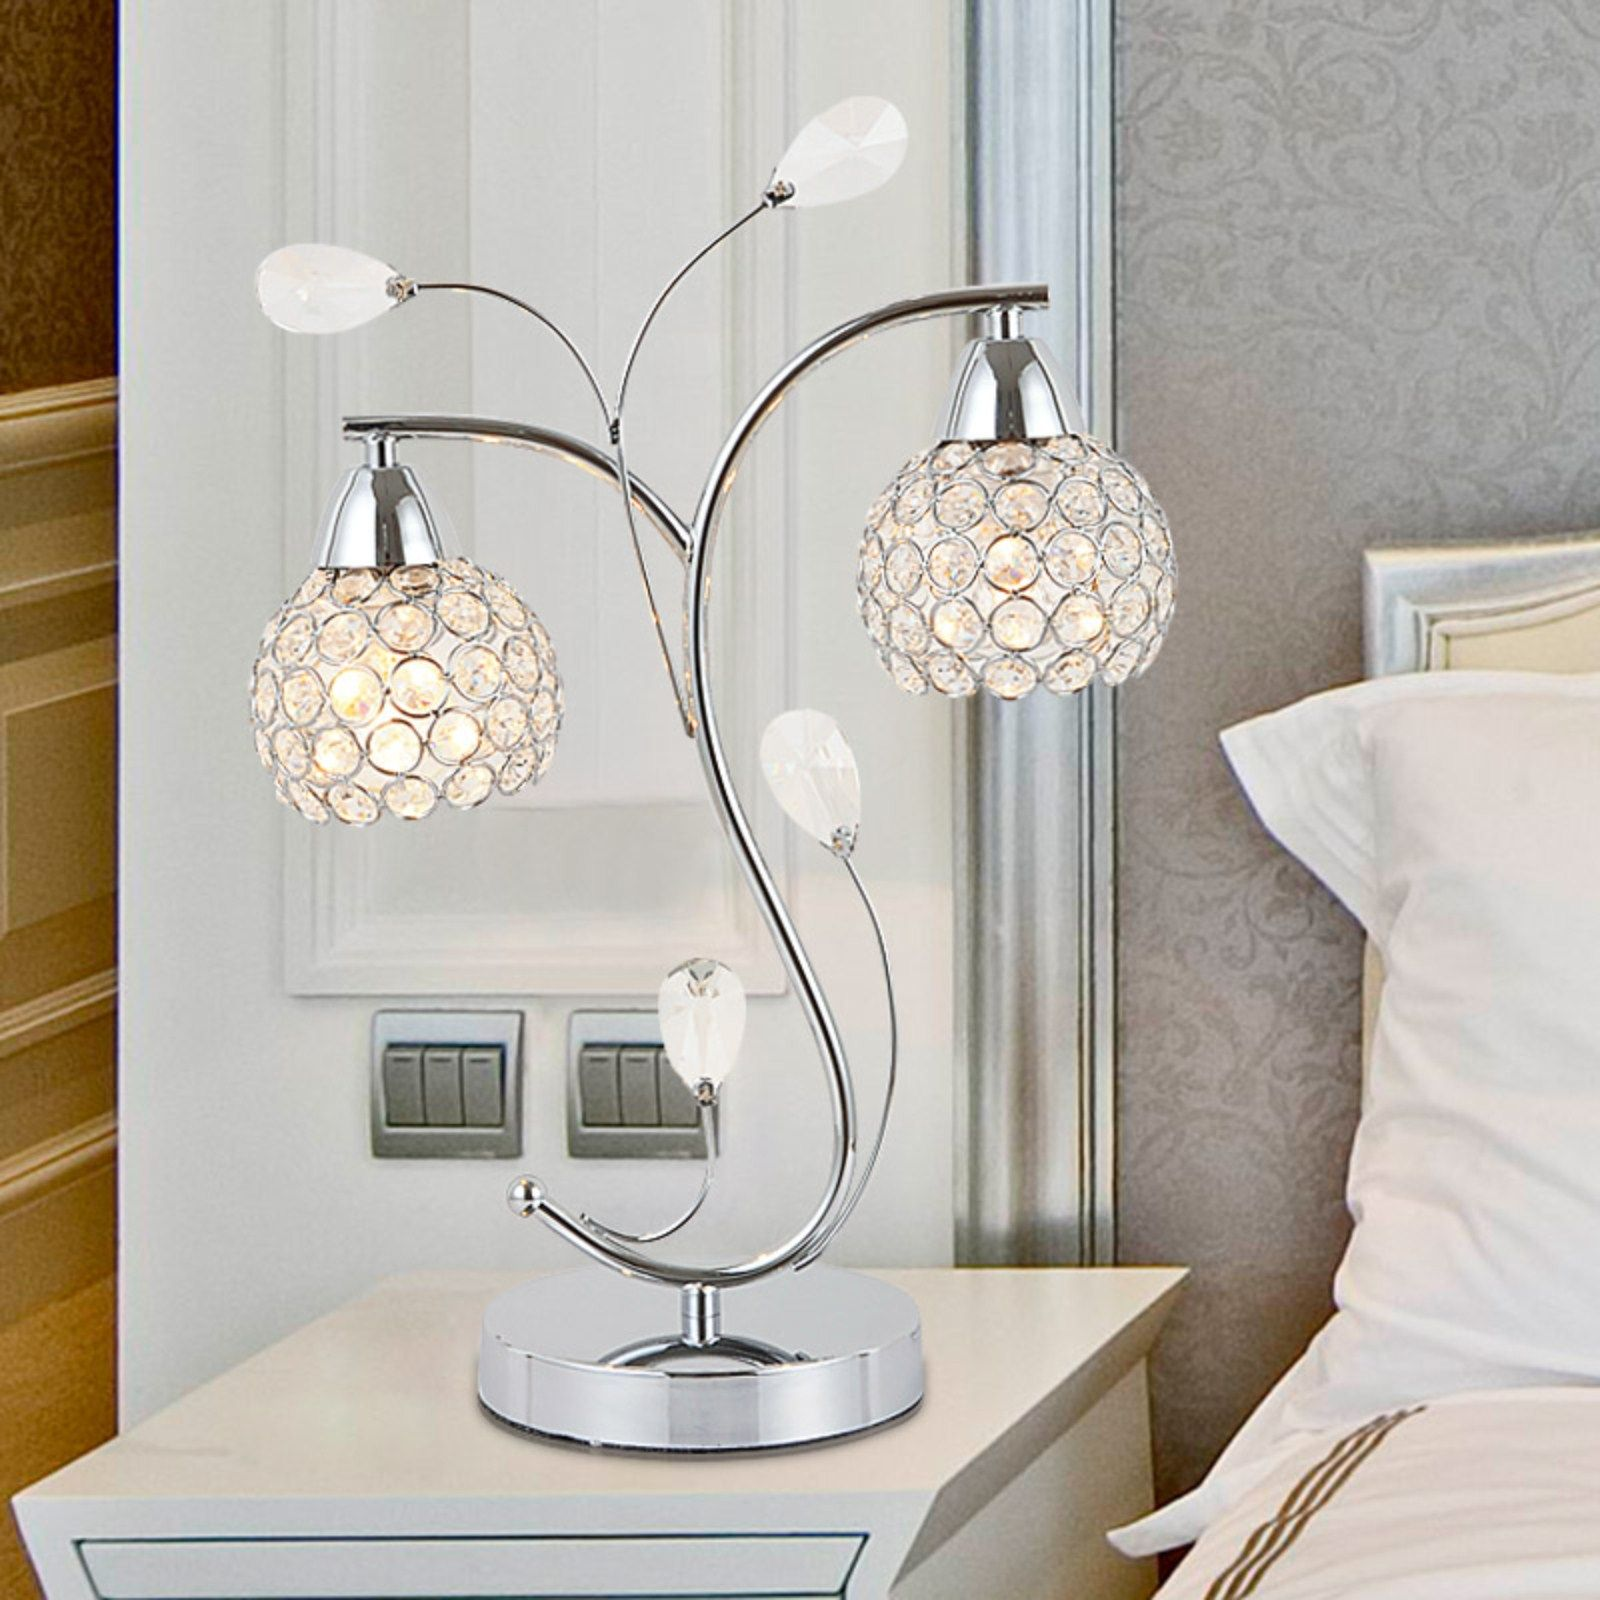 10 Great Spots To Place Side Table Lamps Warisan Lighting In